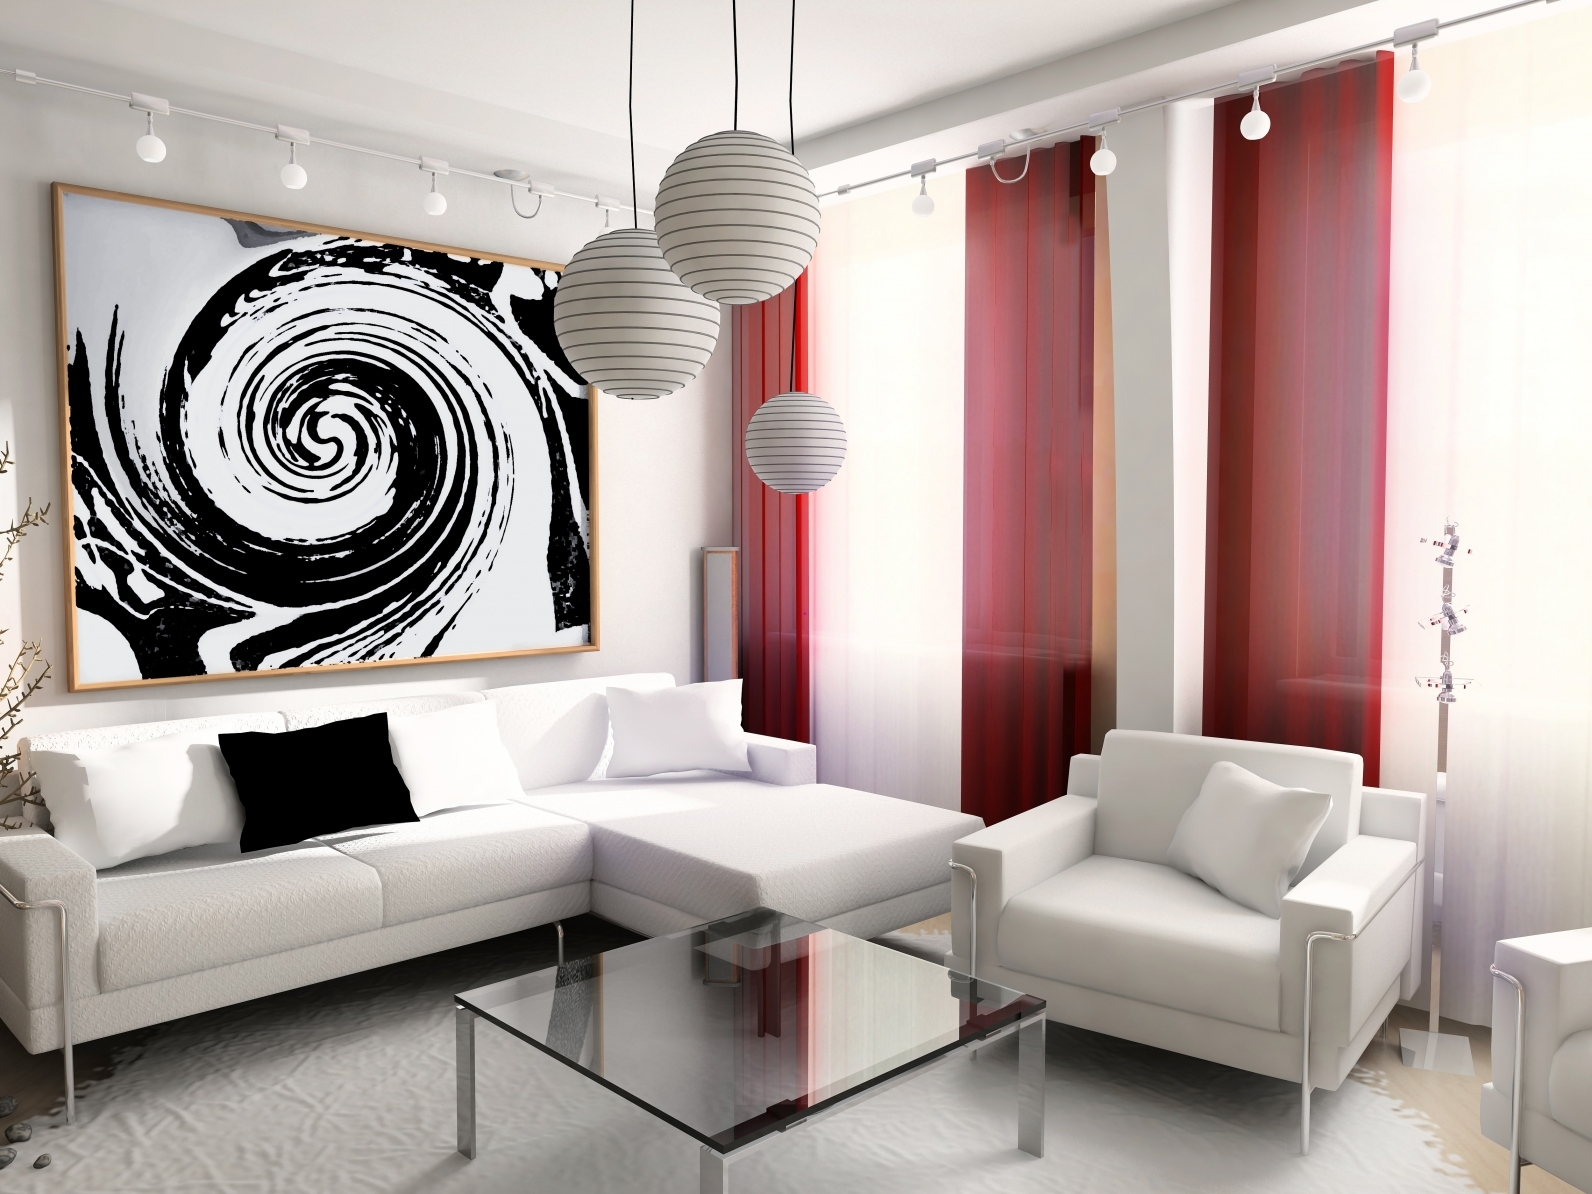 Remarkable White Living Room 1592 x 1194 · 630 kB · jpeg